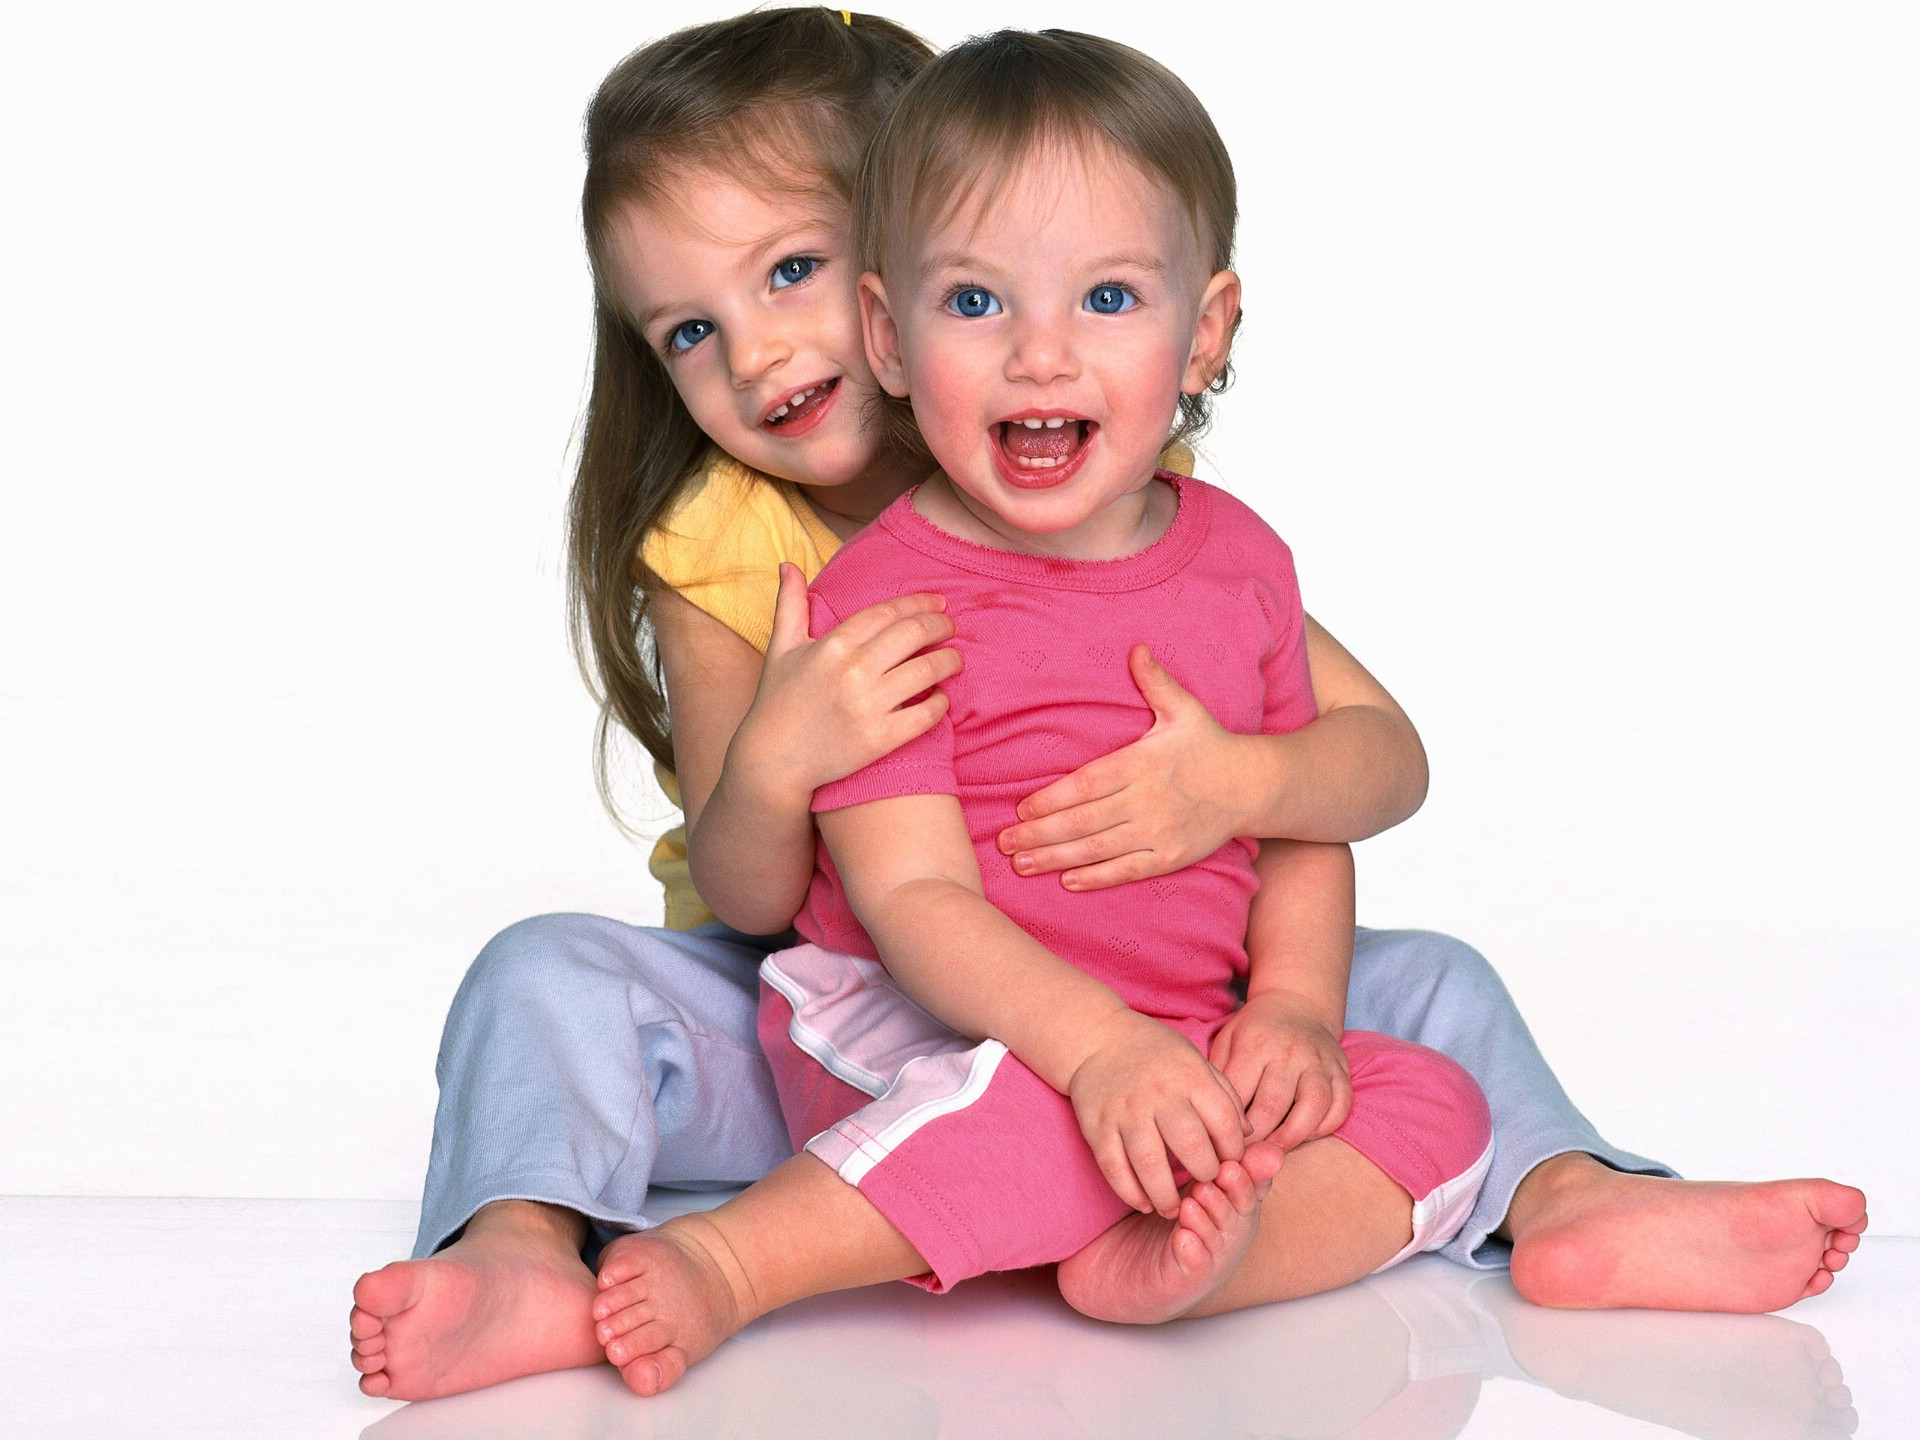 Cute Little Babies Hq 2 Wallpapers: 100 Cute Baby Wallpapers